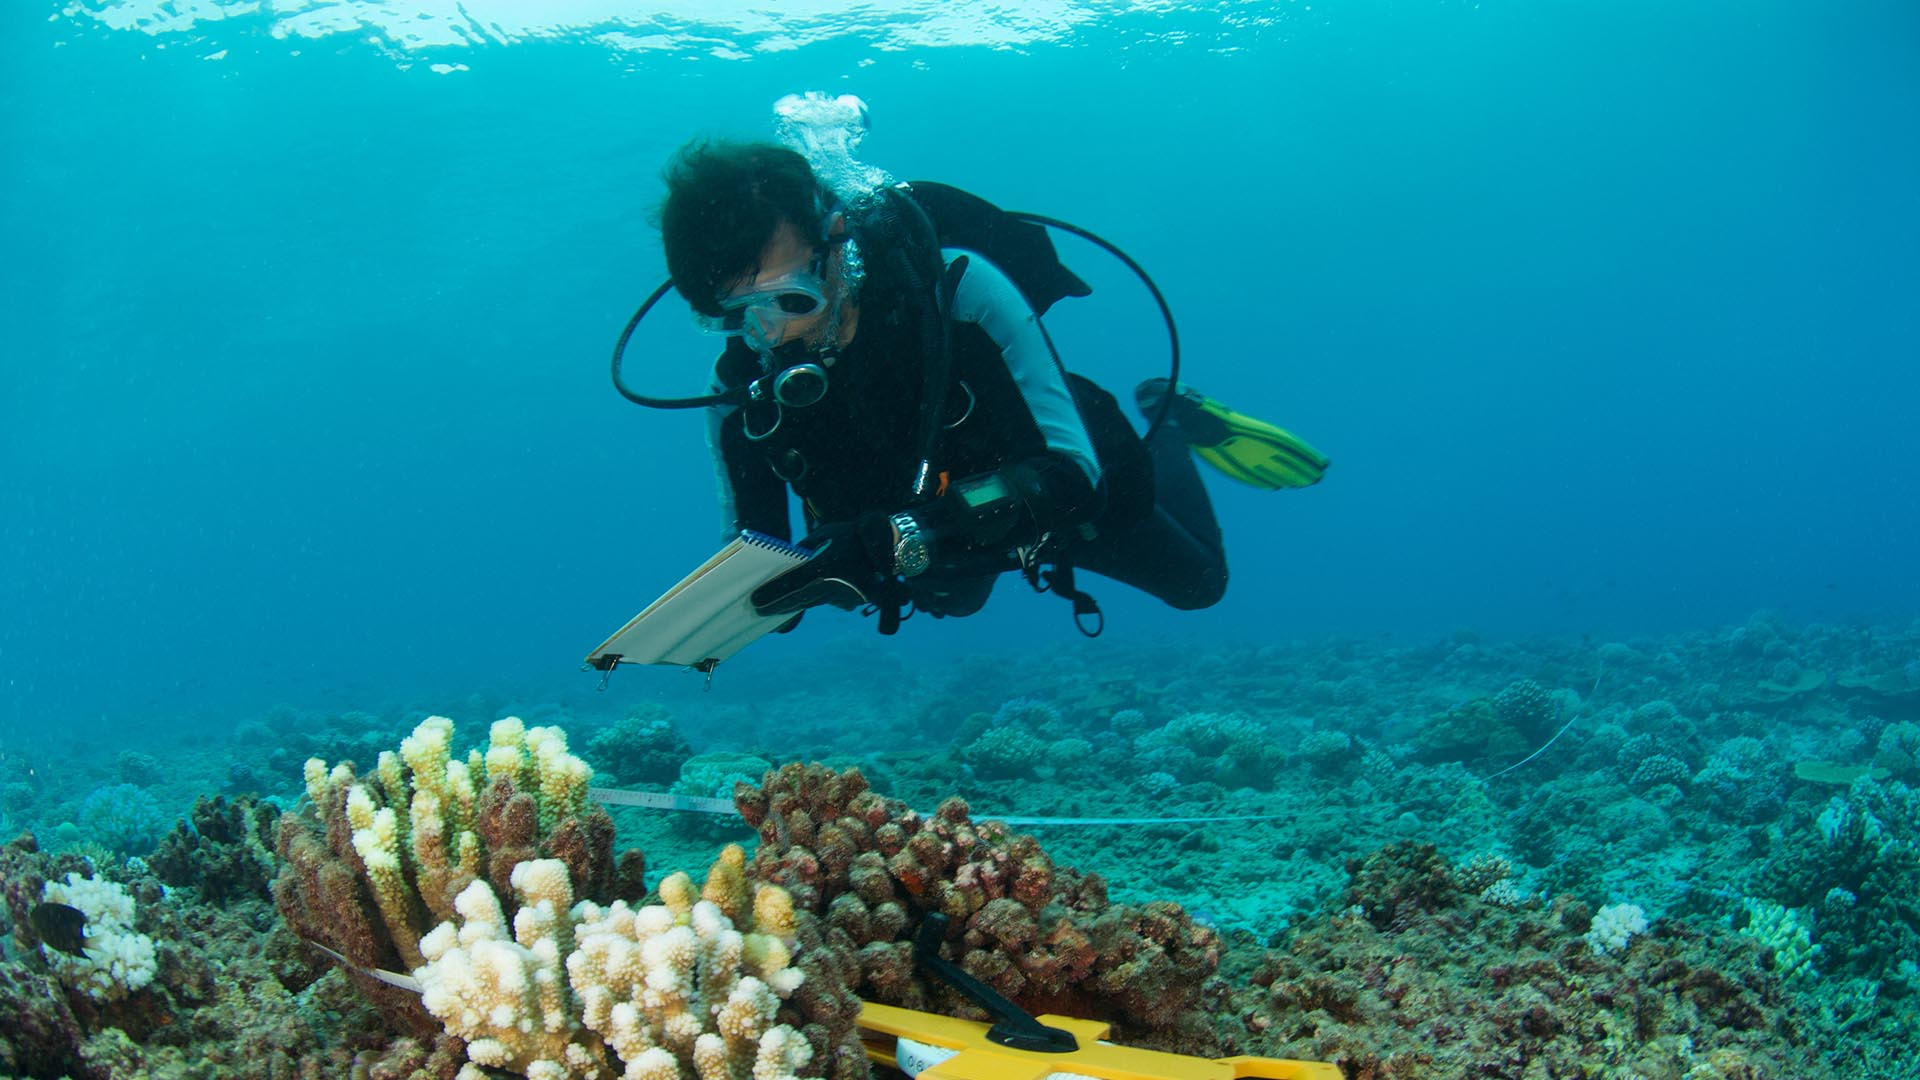 Scuba diver underwater in front of coral, with checklist in hand